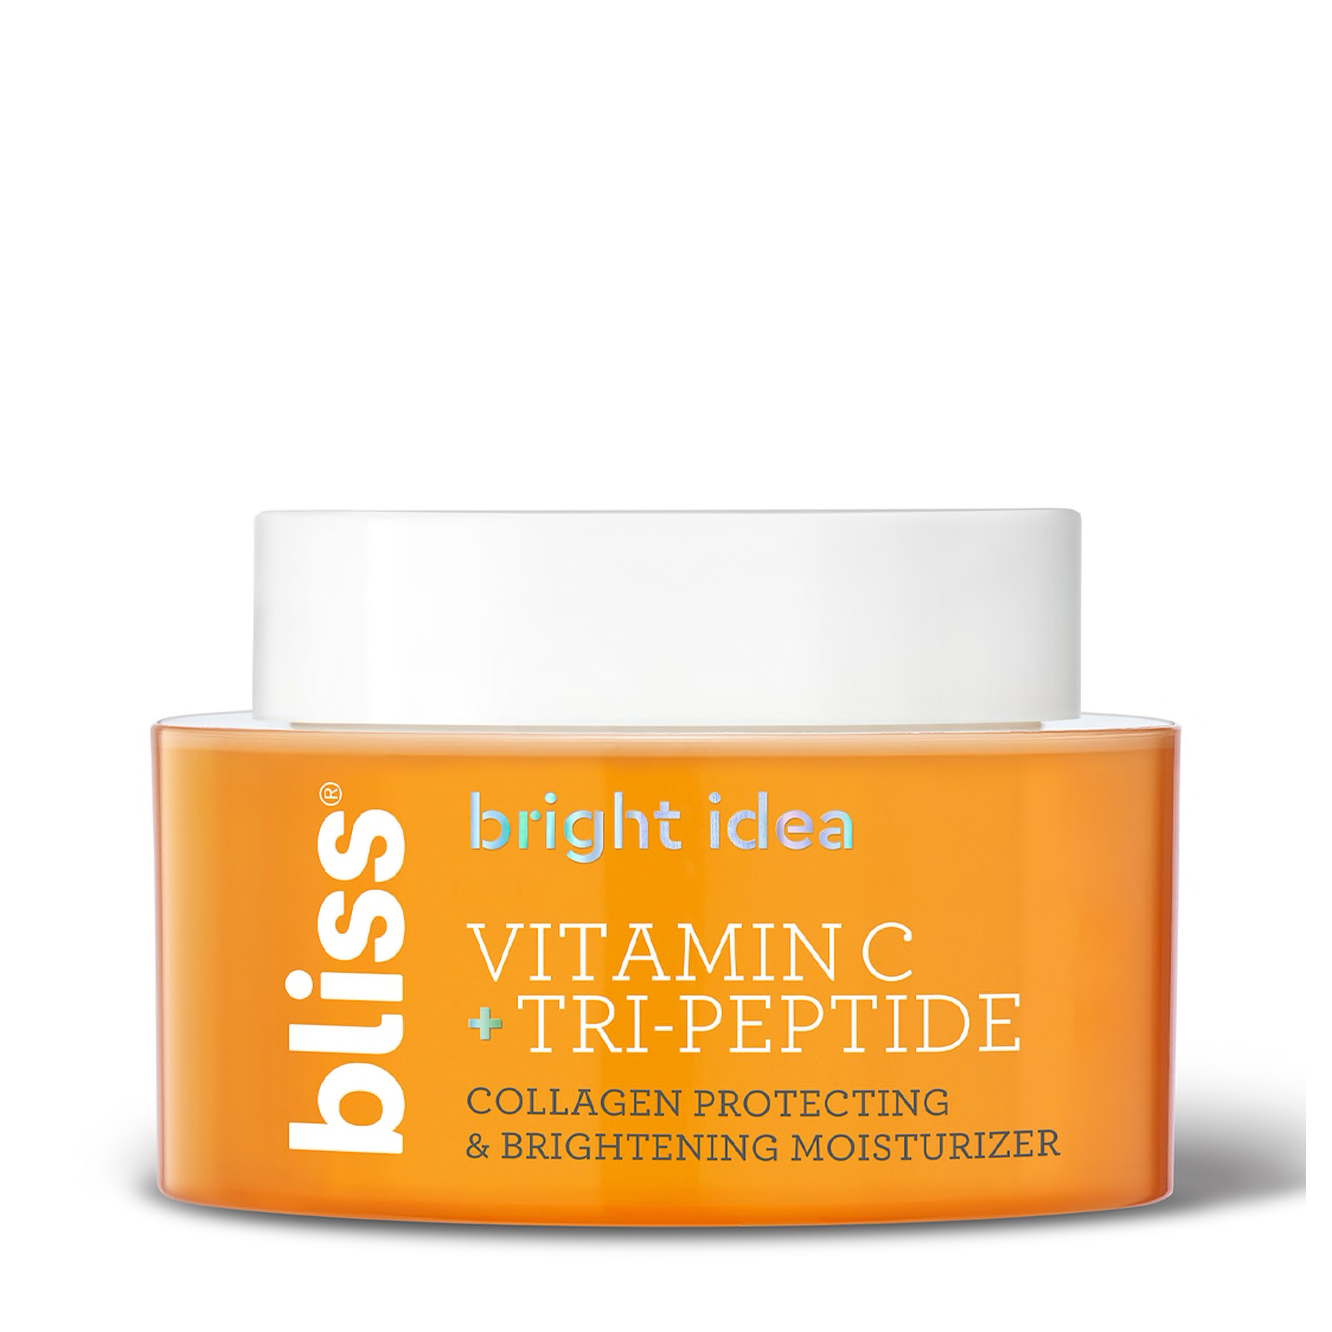 Bliss Bright Idea Vitamin C + Tri-Peptide Collagen Protecting & Brightening Moisturizer